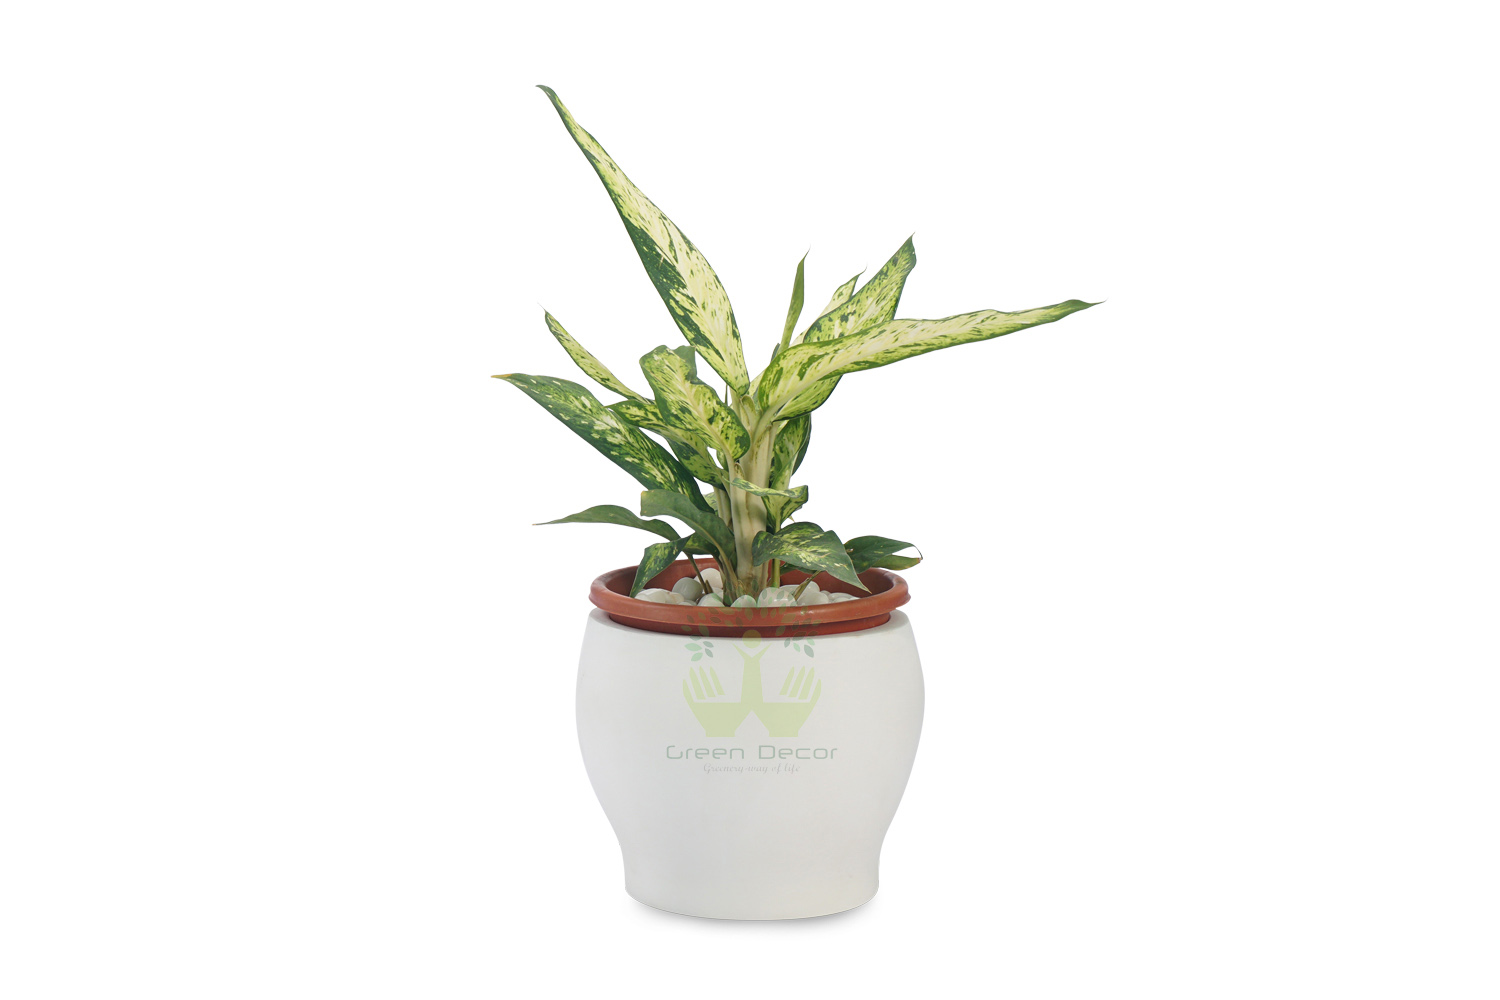 Buy Dieffenbachia Plants , White Pots and seeds in Delhi NCR by the best online nursery shop Greendecor.